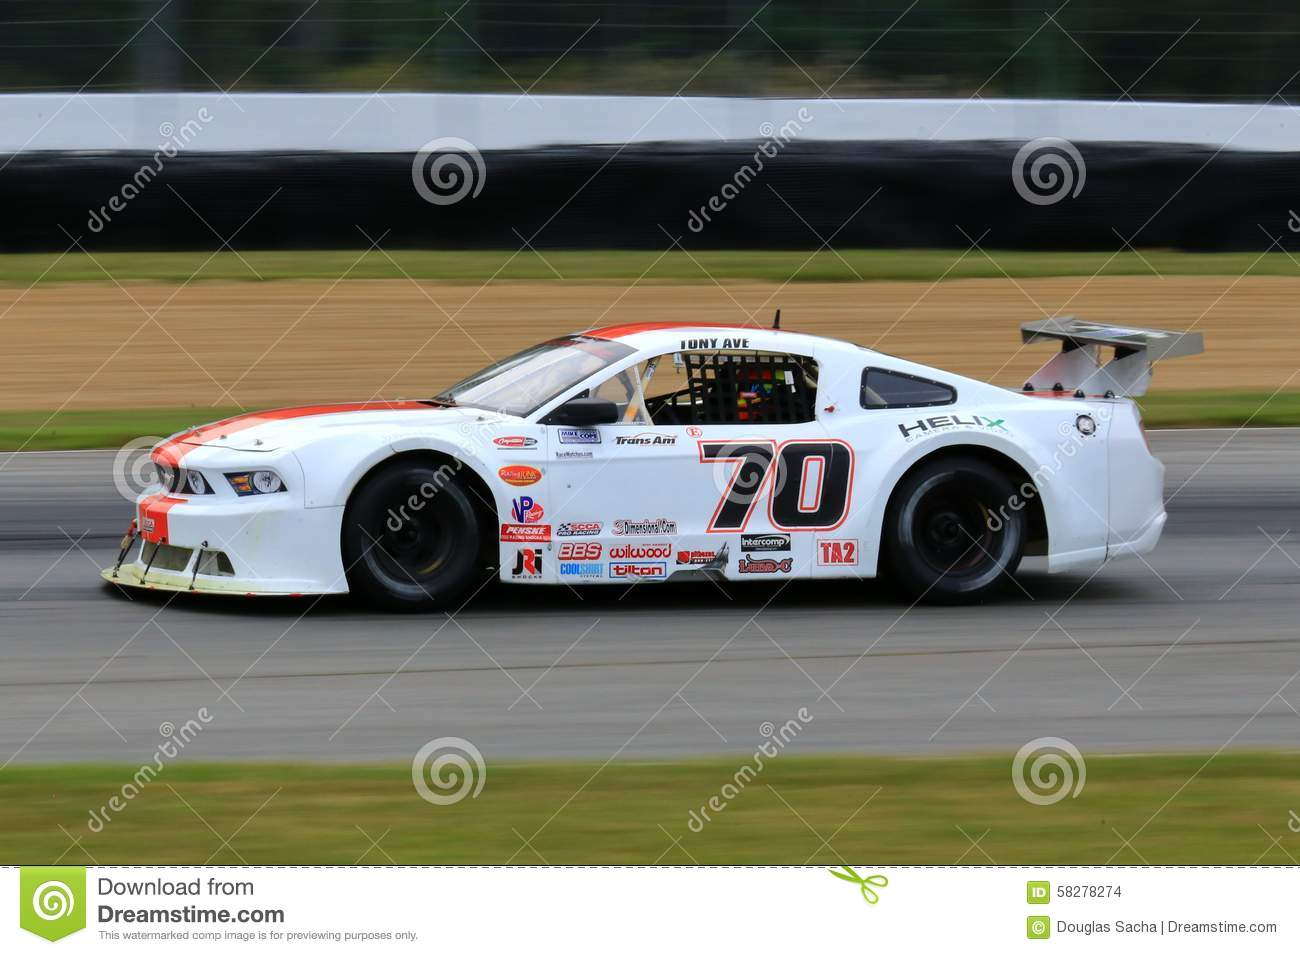 Mid Ohio Raceway >> Pro Ford Mustang Race Car On The Course Editorial Stock Image - Image: 58278274